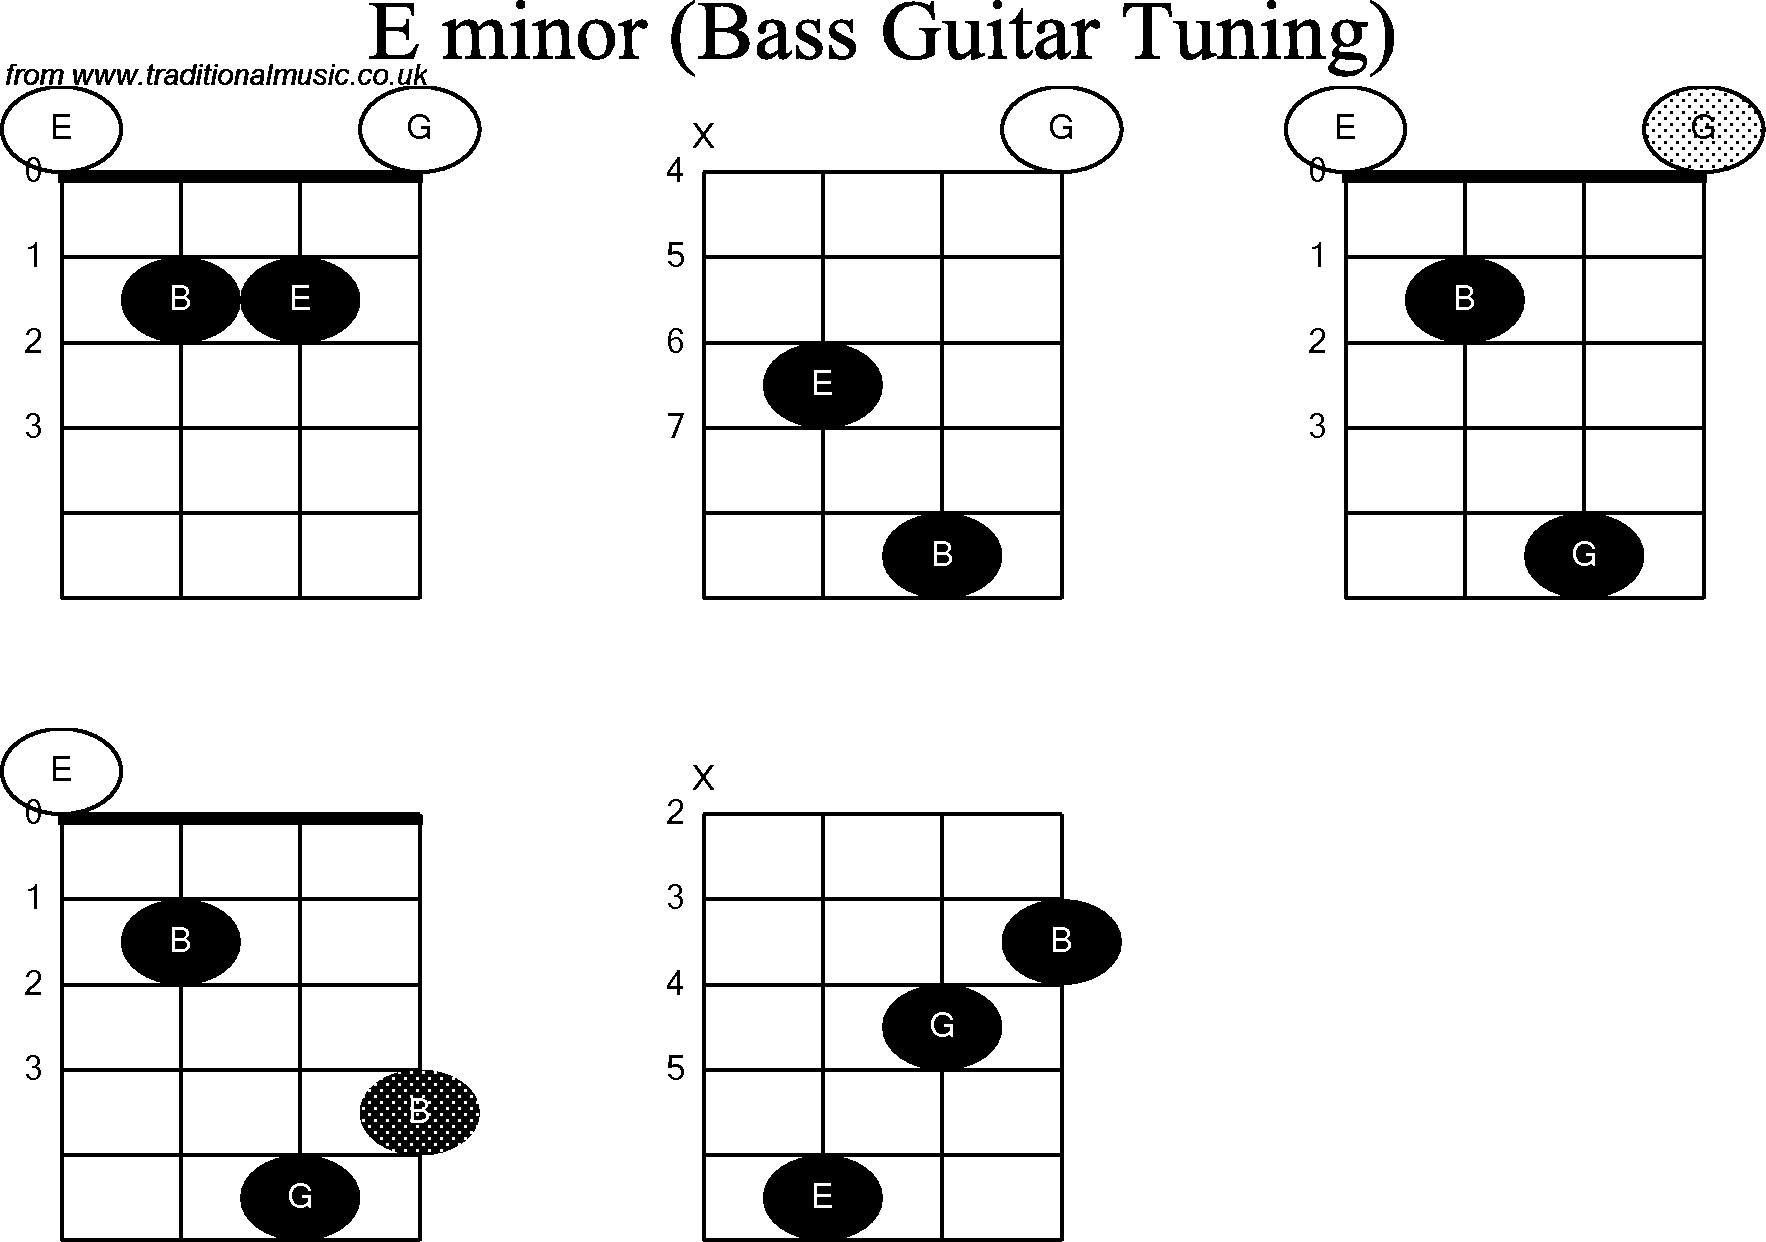 Bass Guitar Chords Bass Guitar Chord Diagrams For E Minor